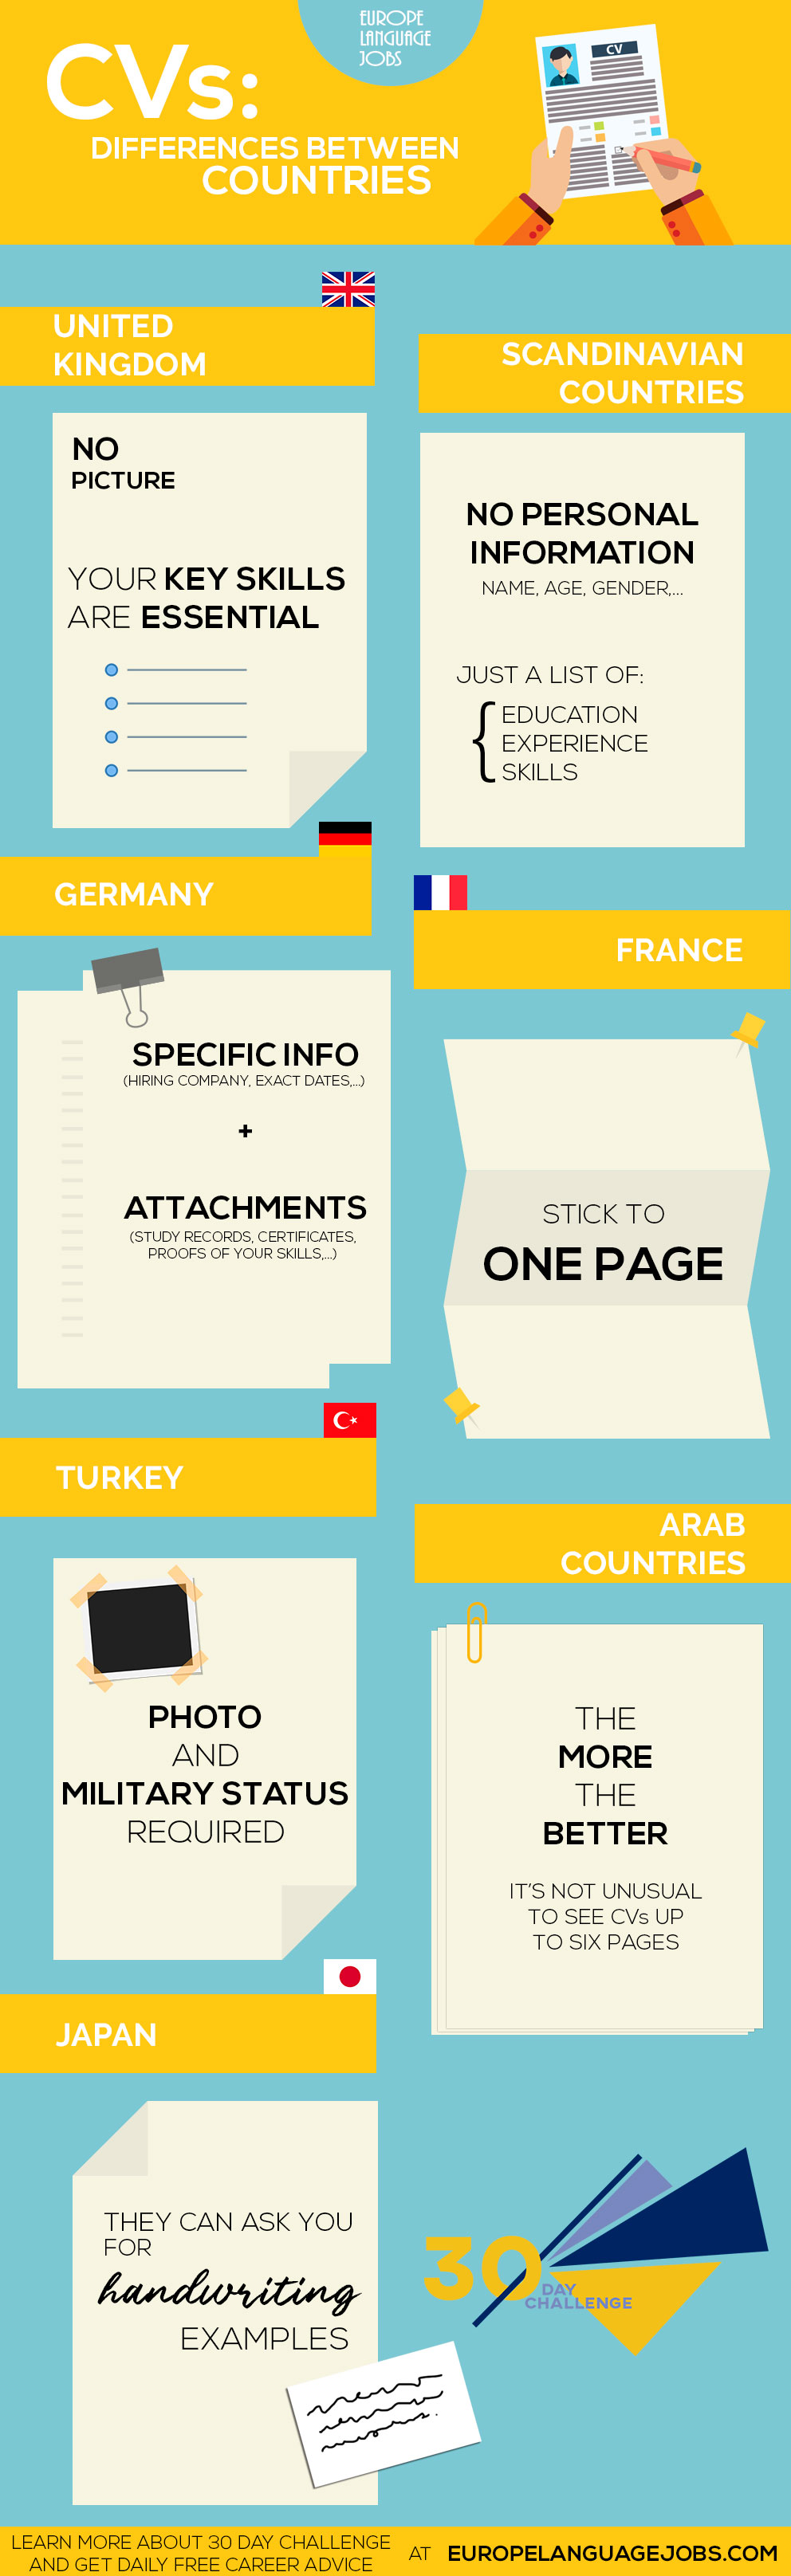 Here Are Some Extreme Examples Of The Different Cv Rules We Have Found For Different Countries Inforgraphic Cv Resume Europe Language Good Cv Languages Jobs